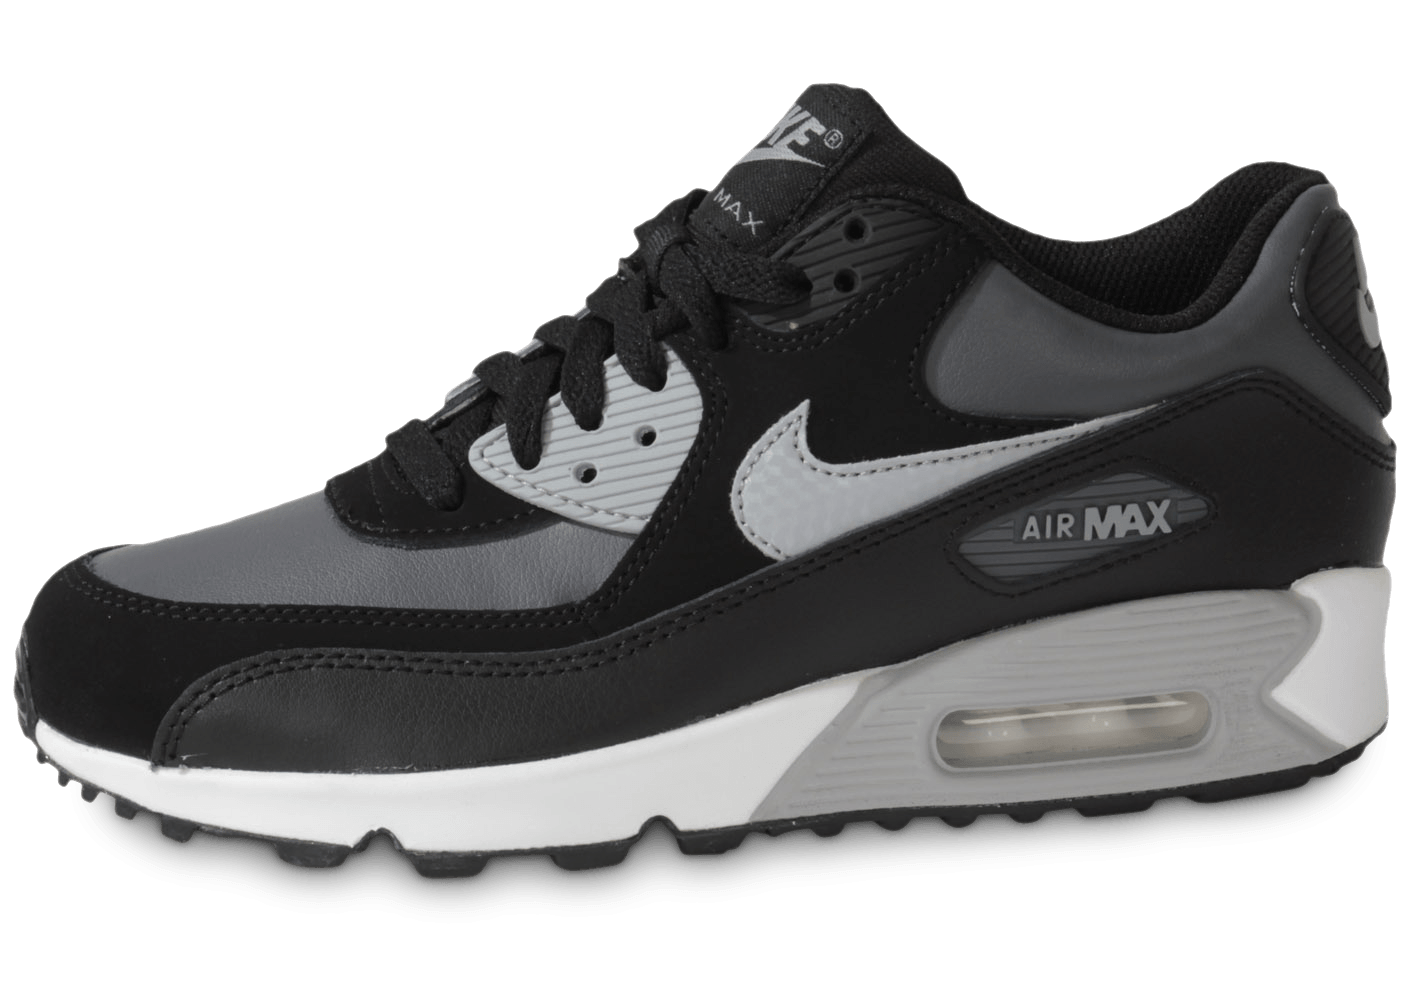 nike air max 90 junior dark grey chaussures chaussures chausport. Black Bedroom Furniture Sets. Home Design Ideas